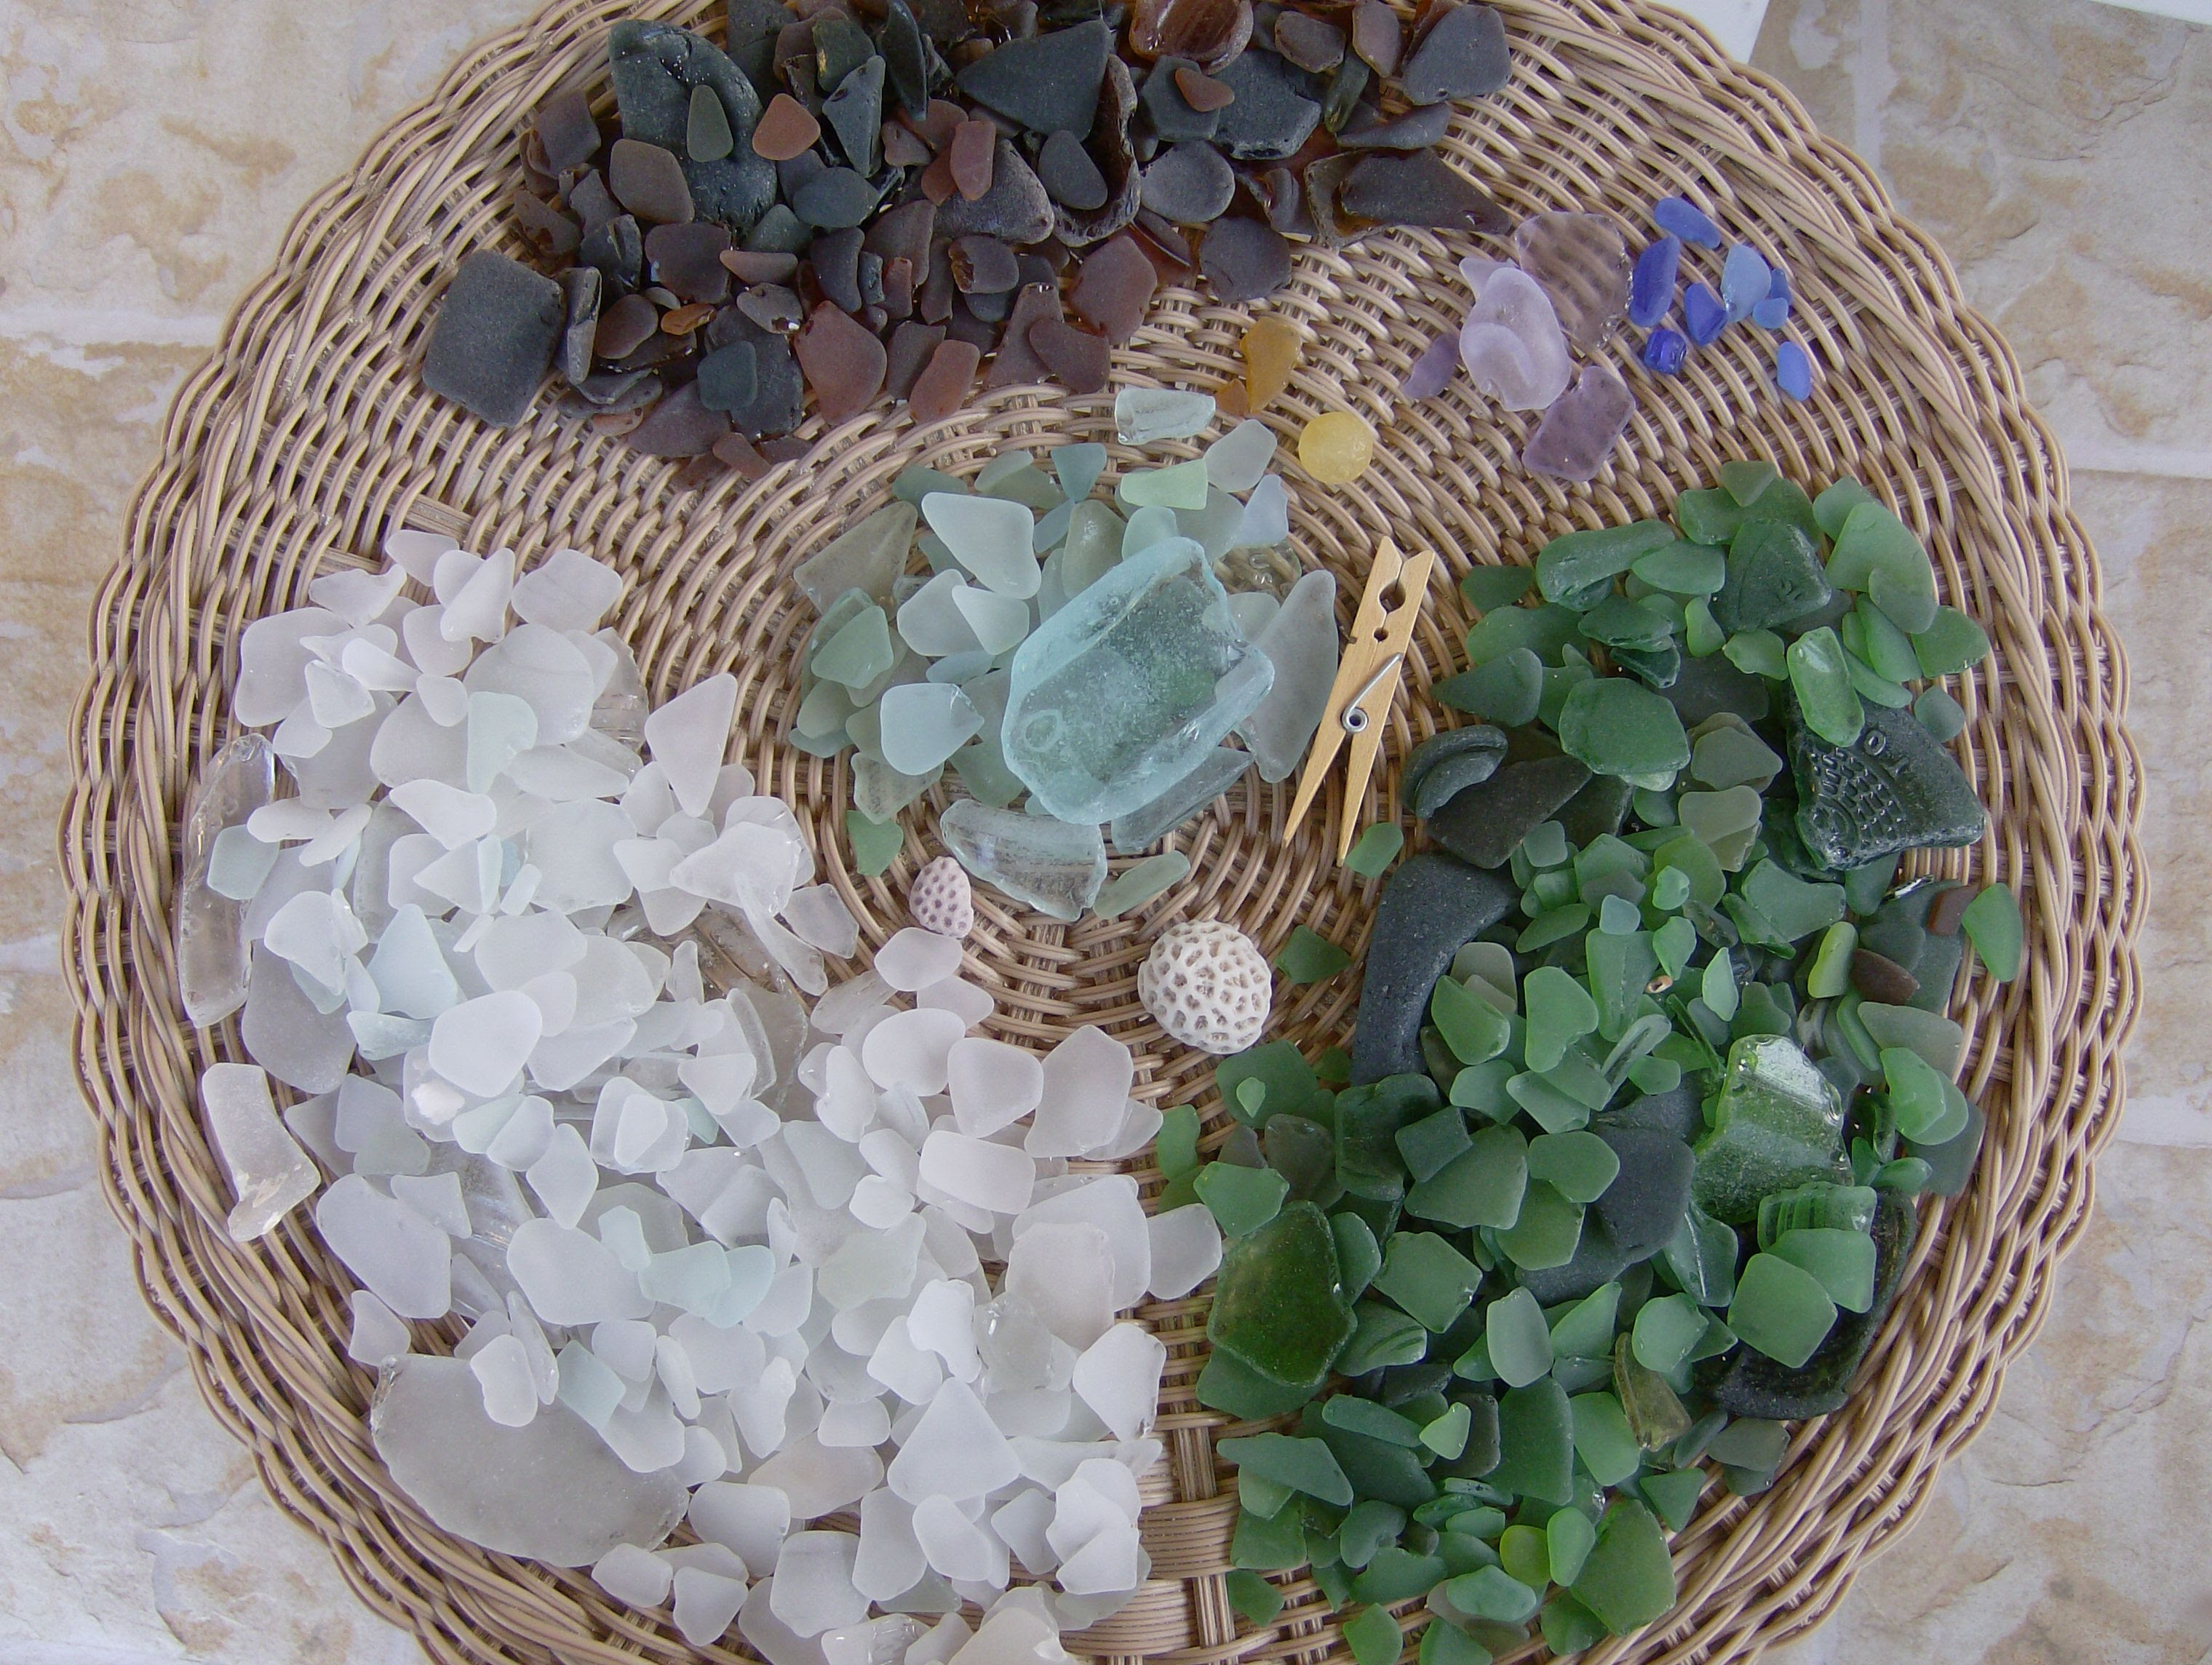 http://seaglassfestival.files.wordpress.com/2008/08/alices-sea-glass.jpg